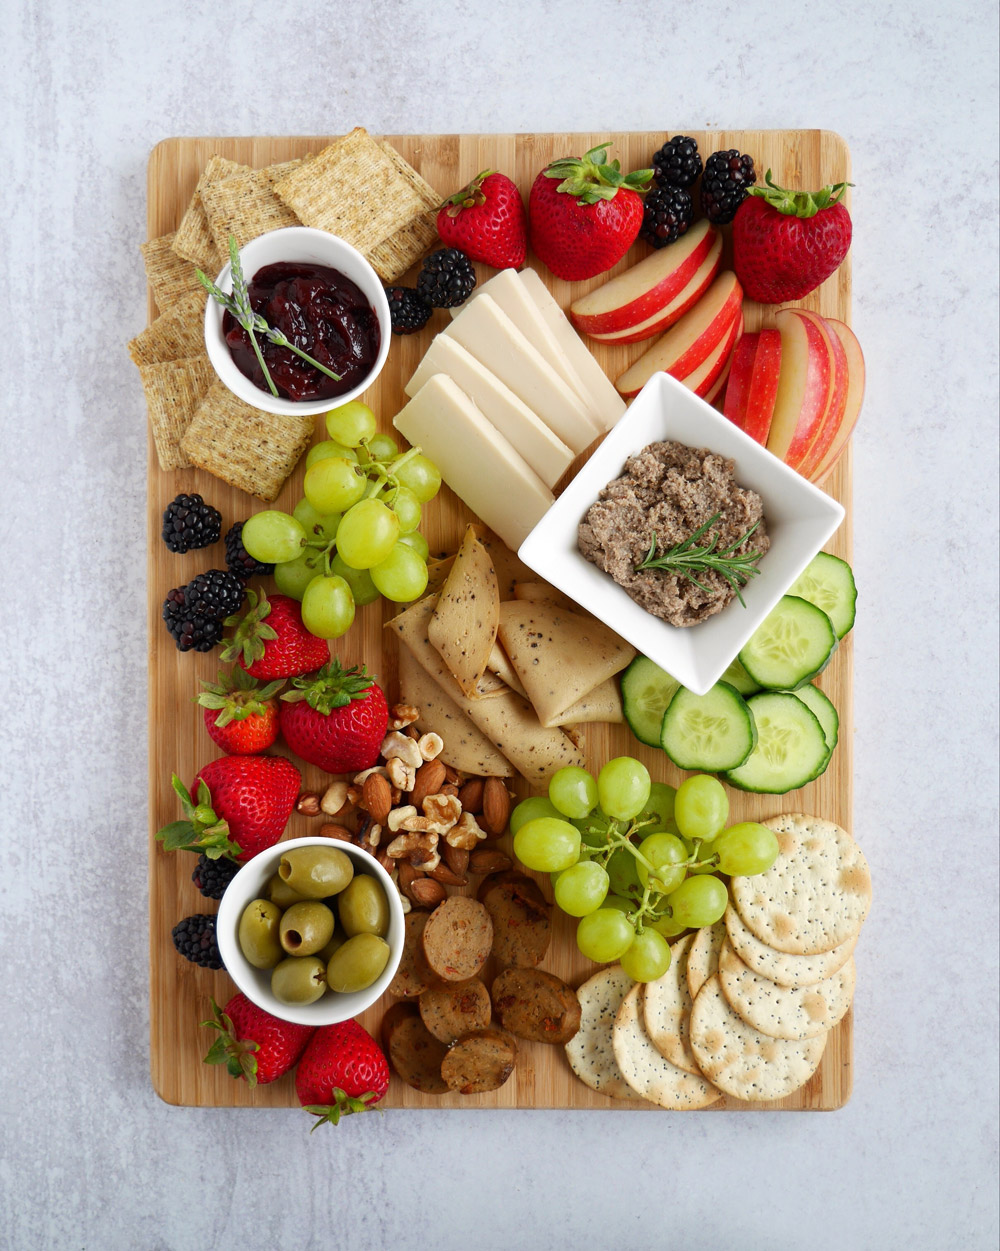 How To Make A Vegan Charcuterie Board, Large Board